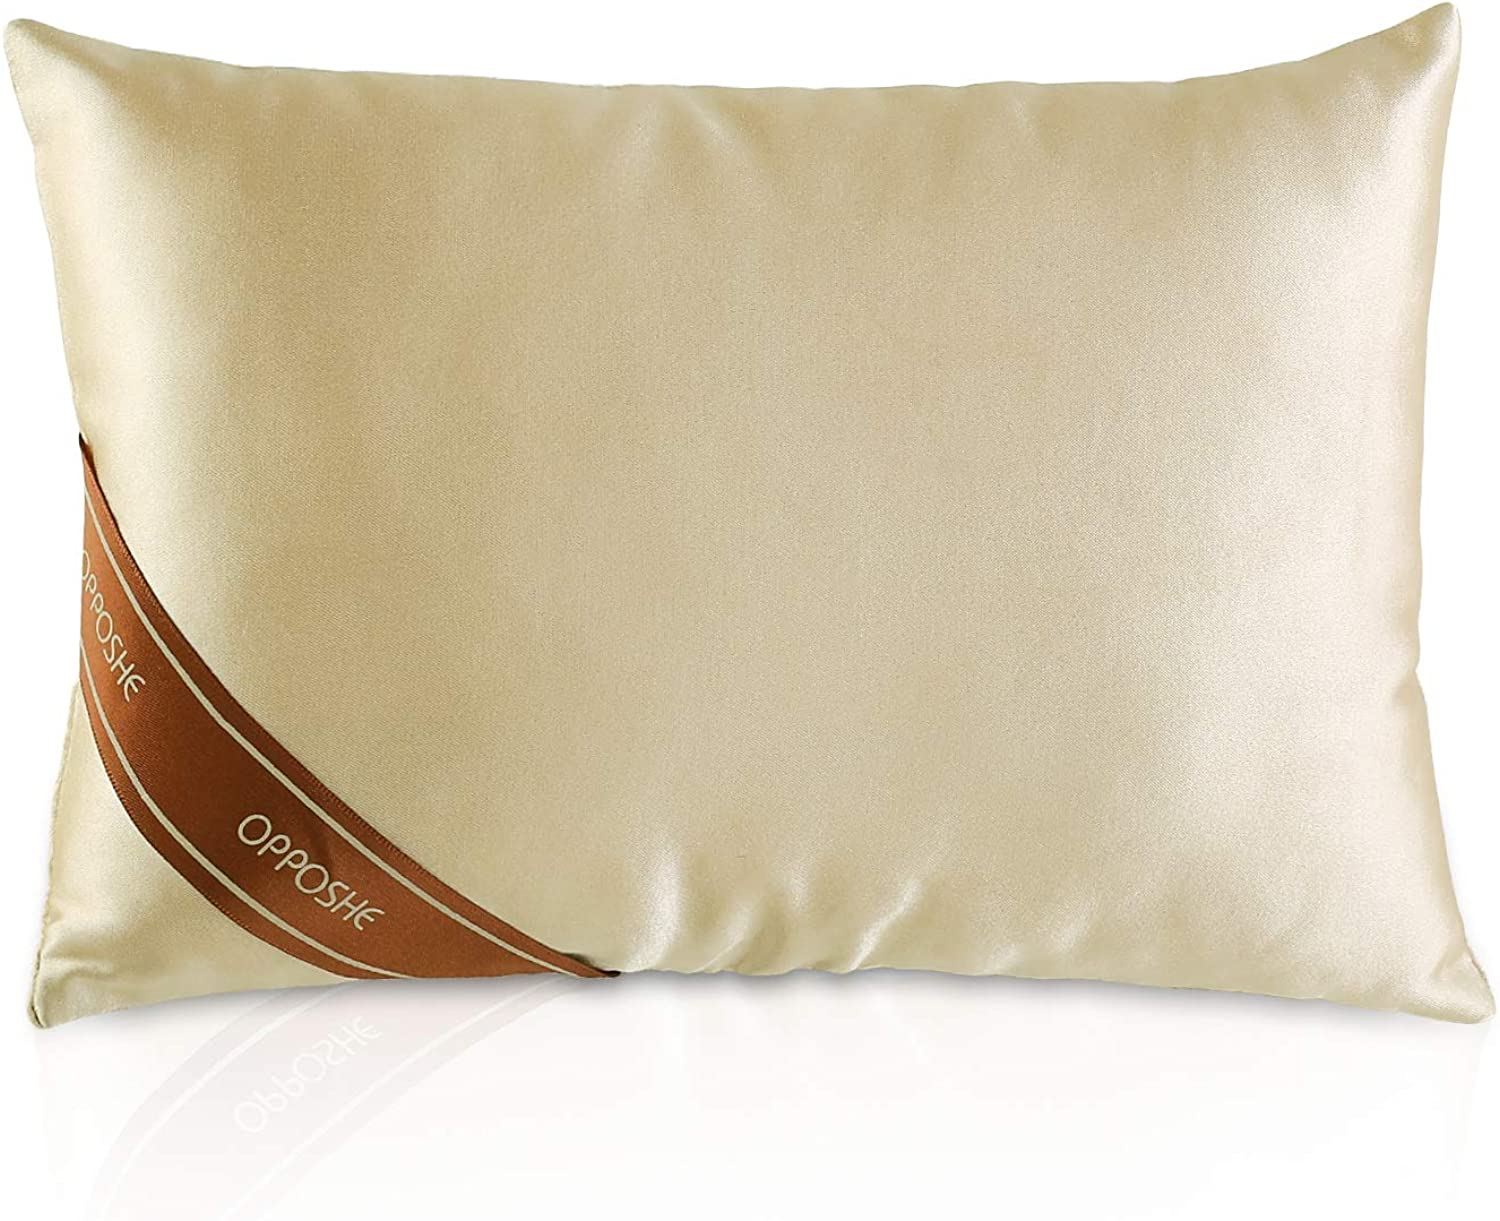 OPPOSHE Popular products Purse Pillow Insert for Raleigh Mall Silky Luxury Sh Handbags